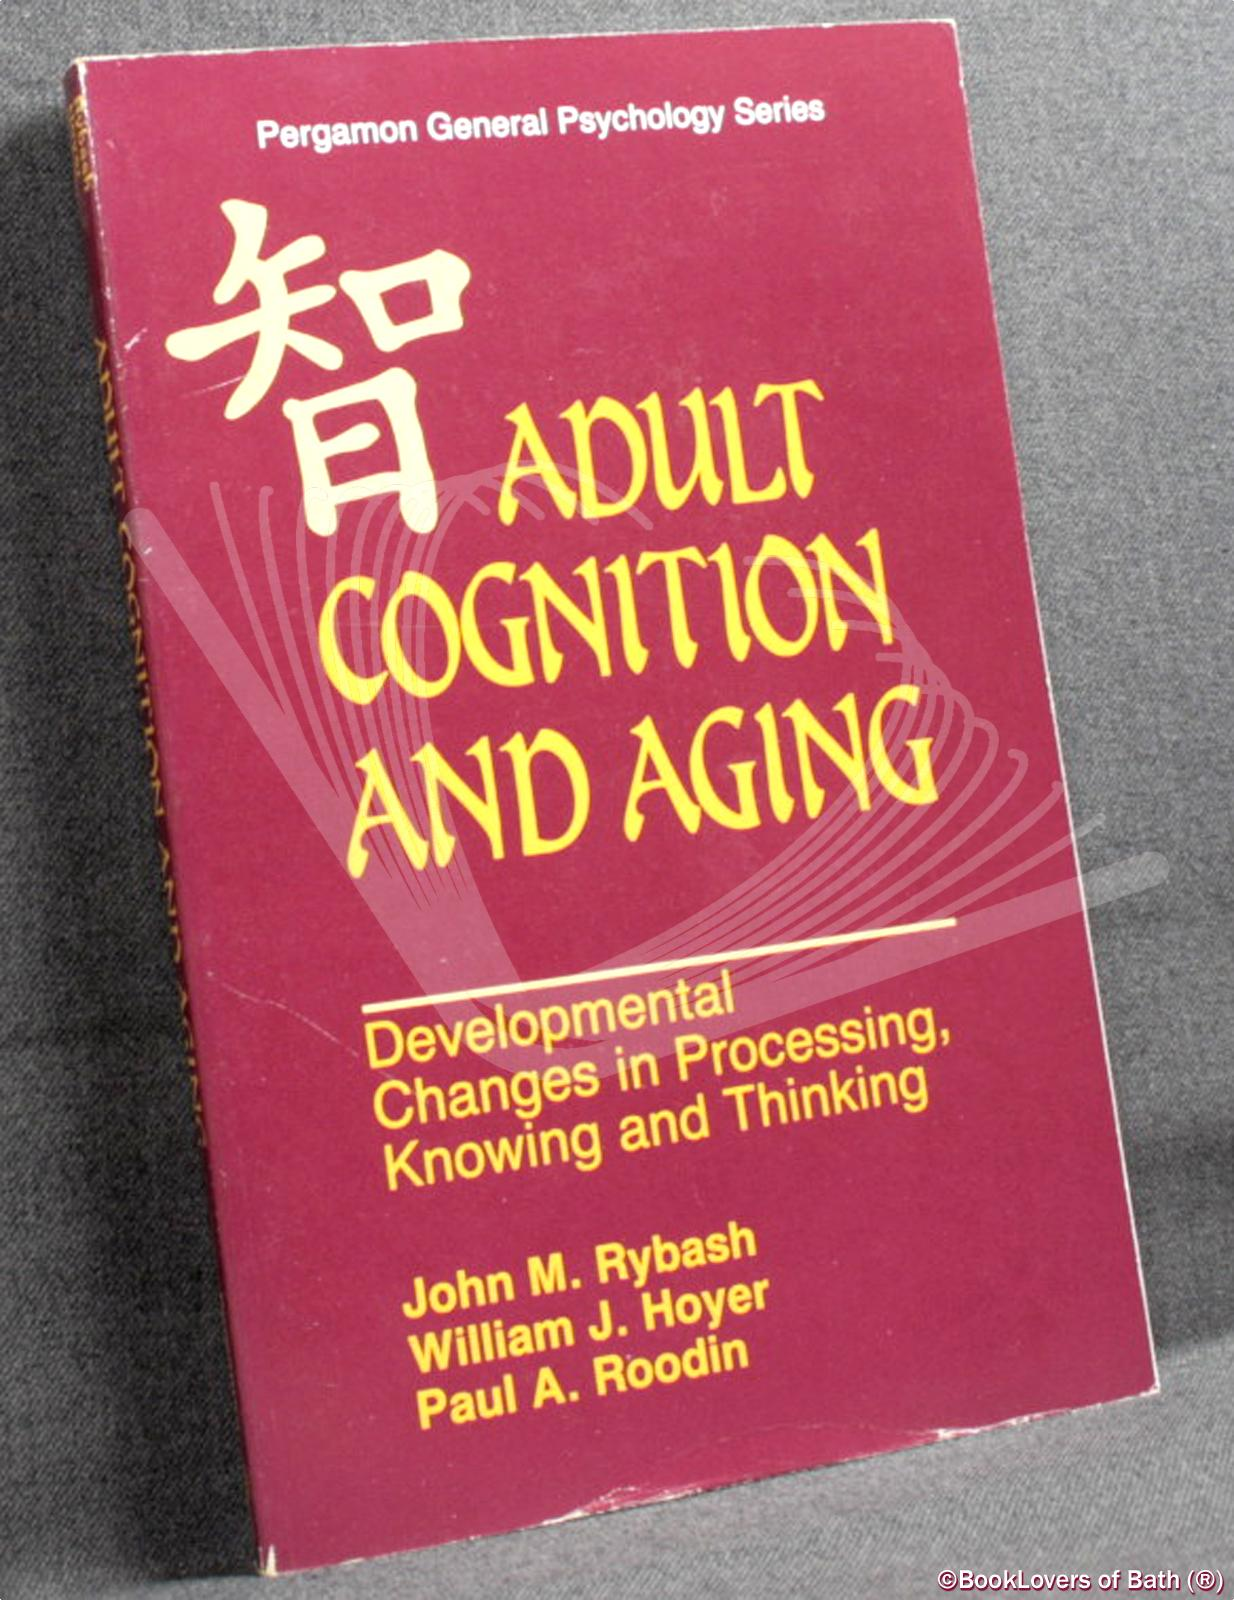 Adult Cognition and Aging: Developmental Changes in Processing, Knowing and Thinking - John M. Rybash, William J. Hoyer & Paul A. Roodin